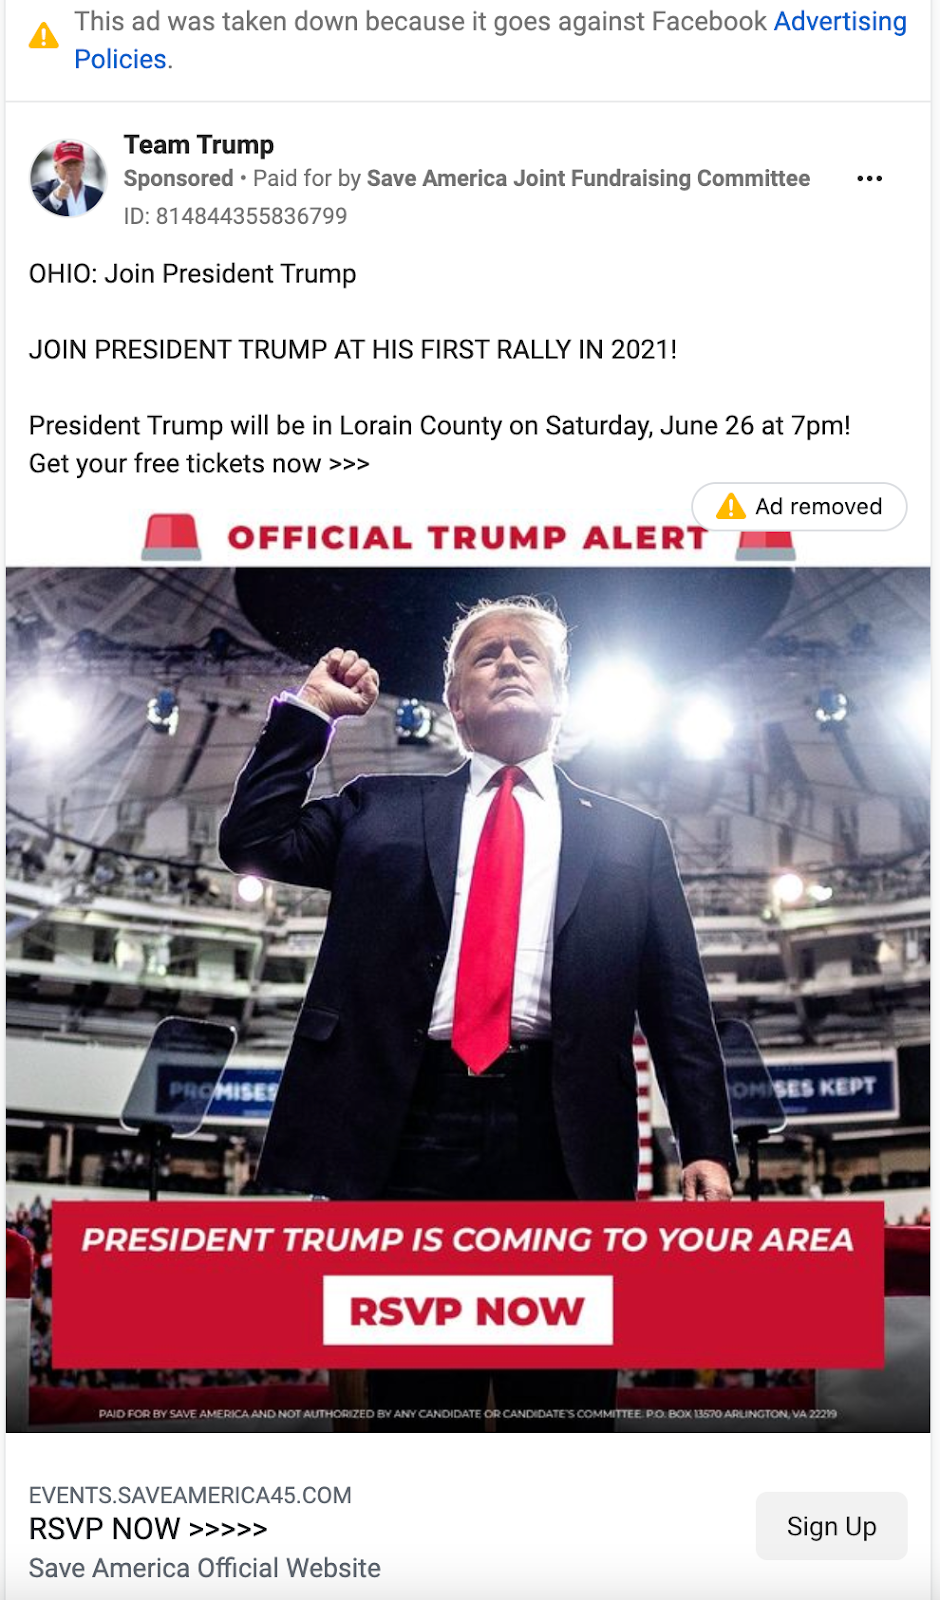 Team Trump_ohio rally facebook ad_example of ad removed